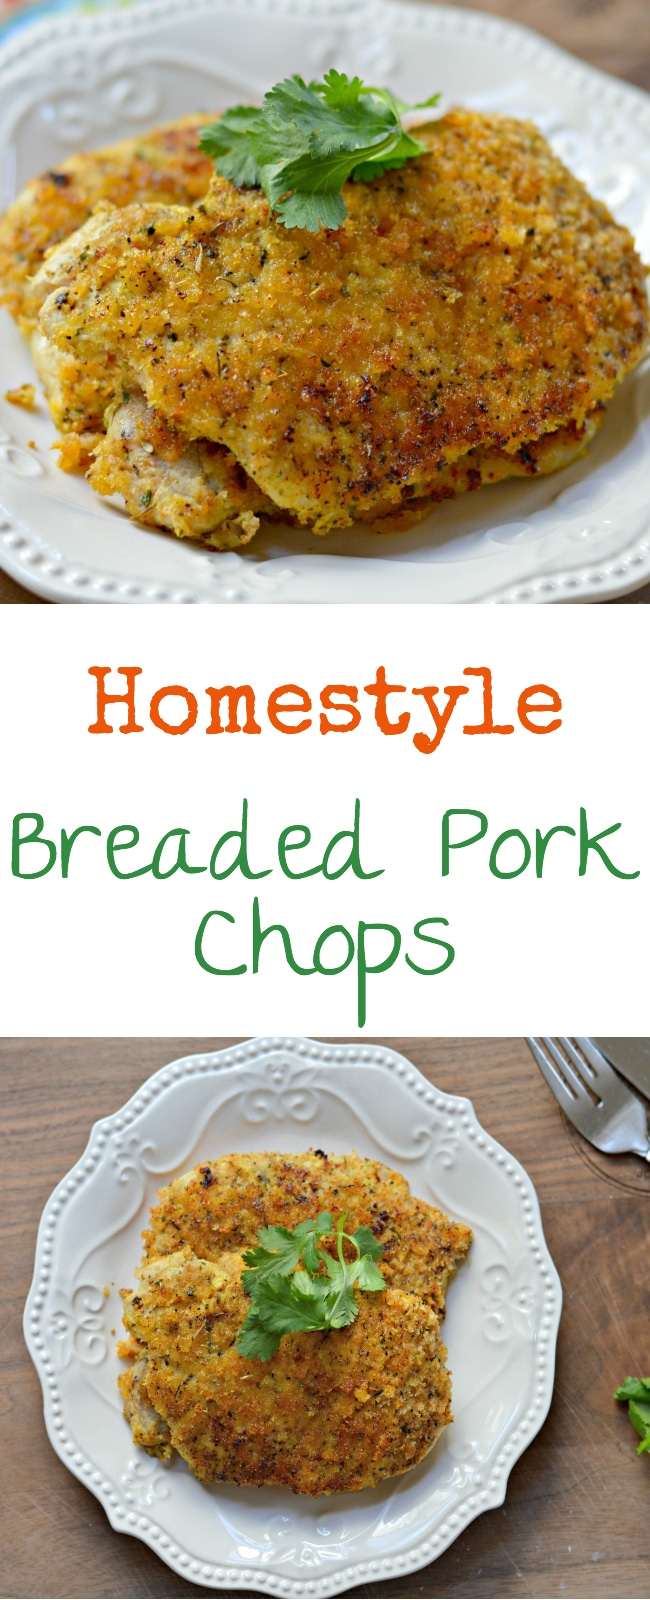 This homestyle breaded pork chops recipe has a delicious combination of herbs and spices and is a perfect choice for dinner.